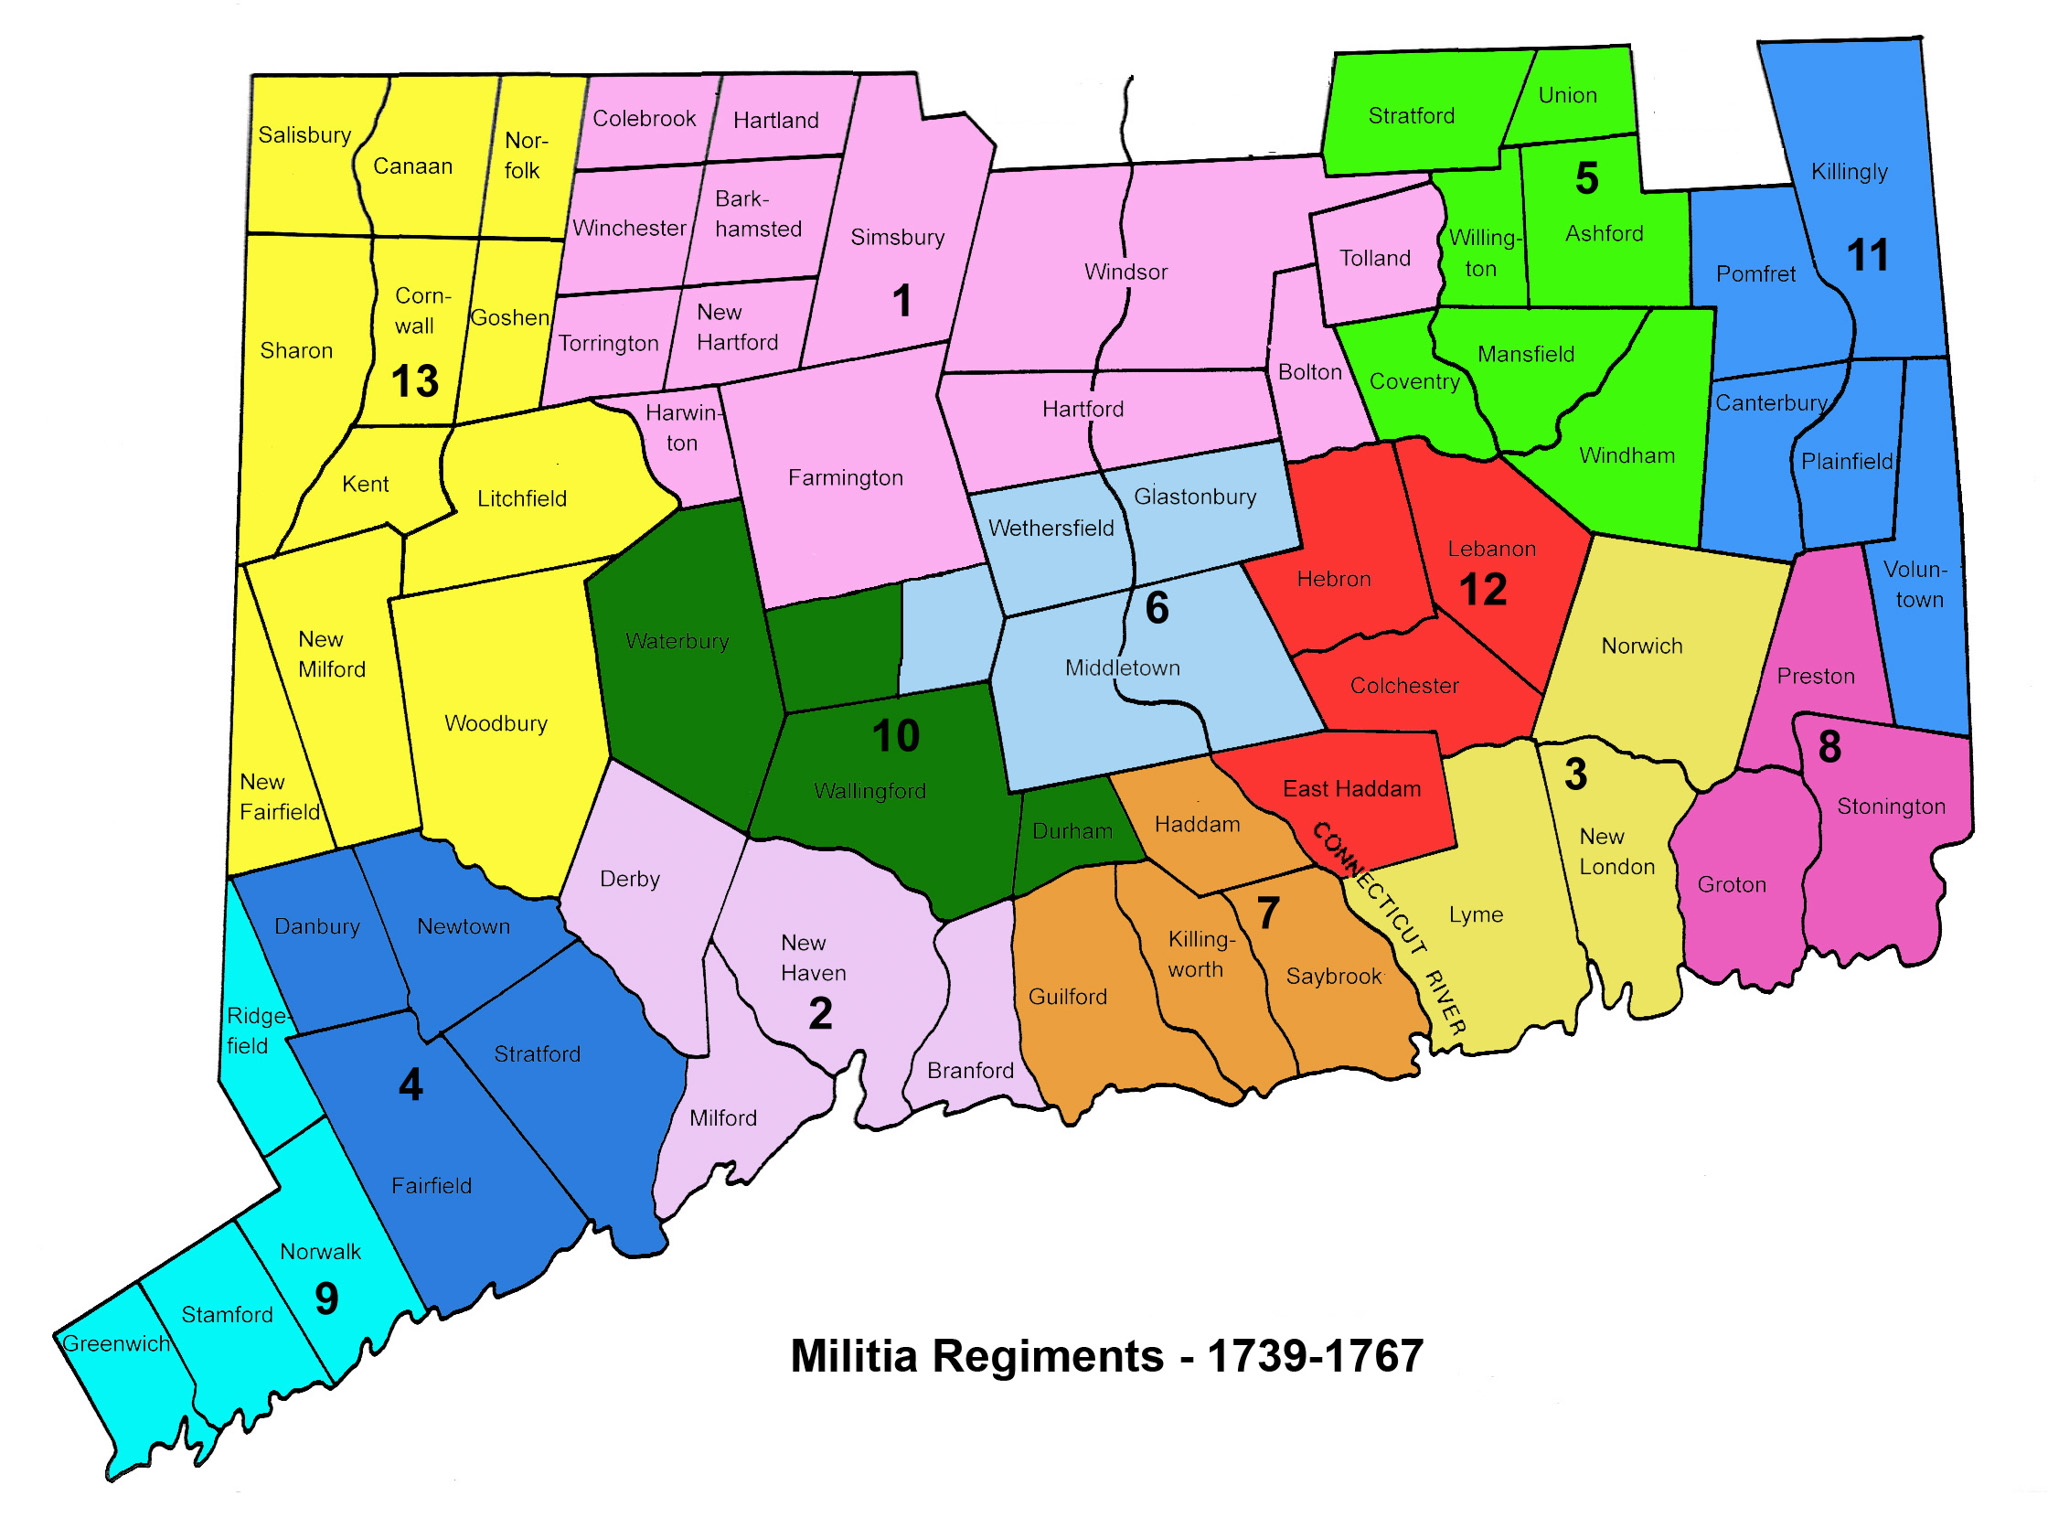 Trained Bands in Connecticut Military, 1739-1767